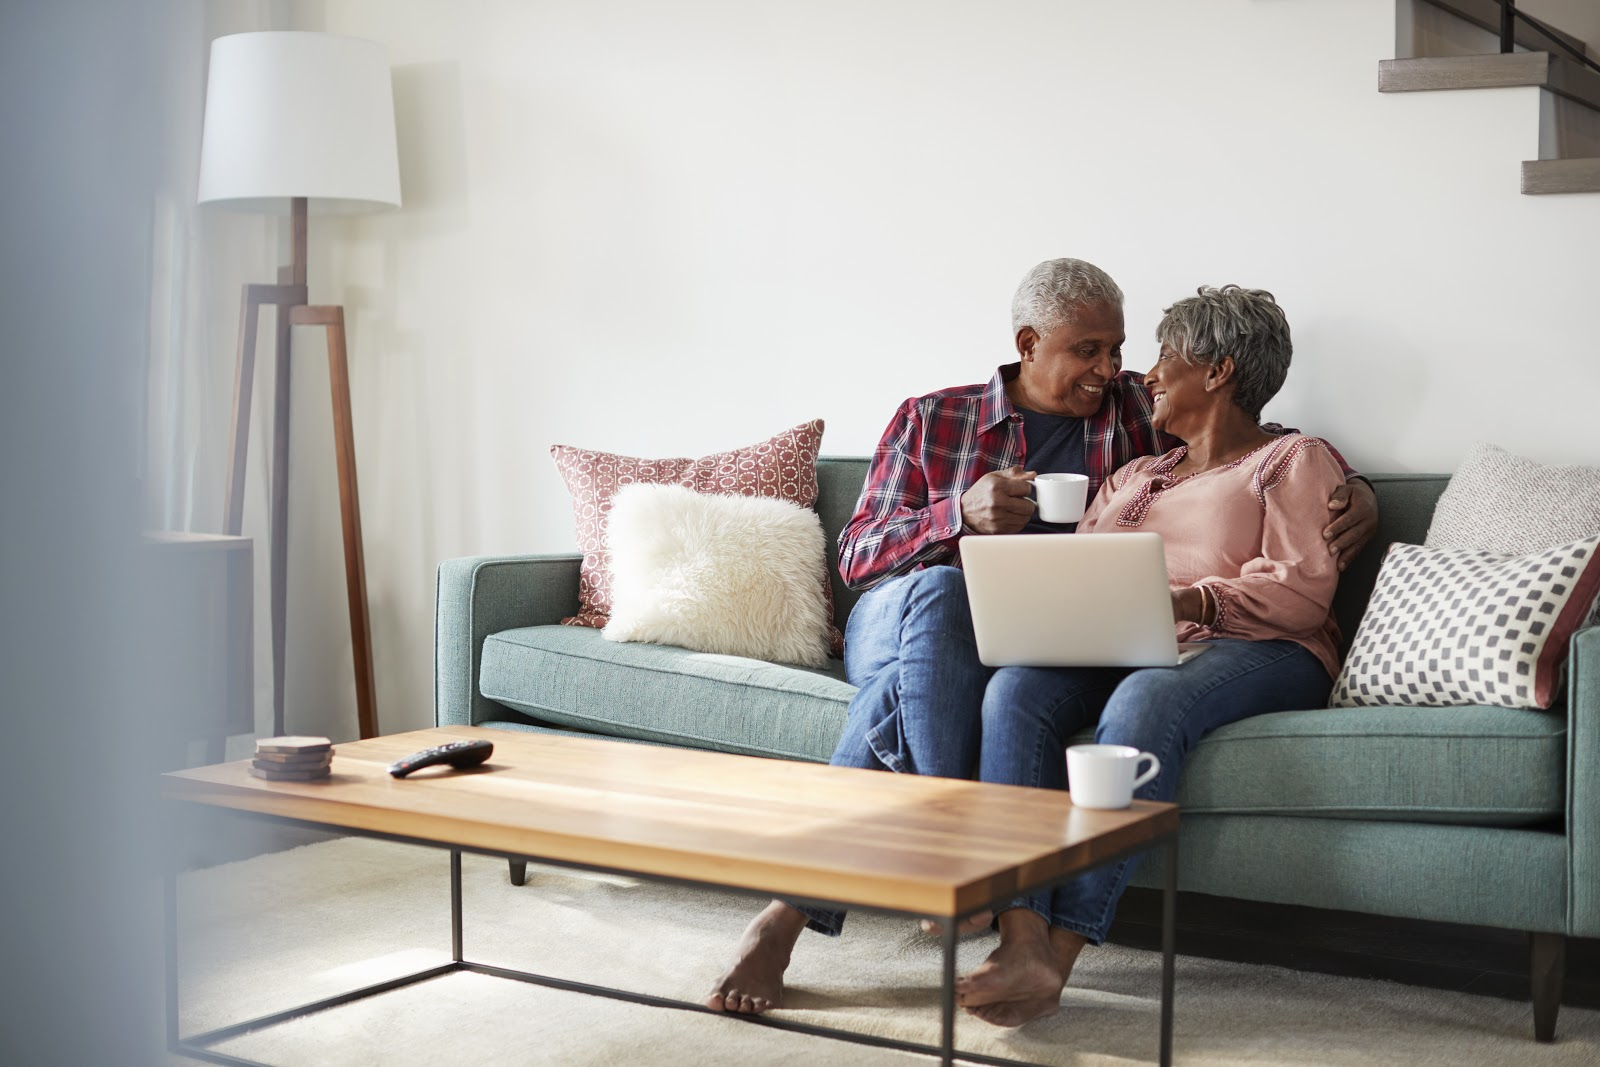 preferred shares: old man and woman sitting in the living room while having coffee